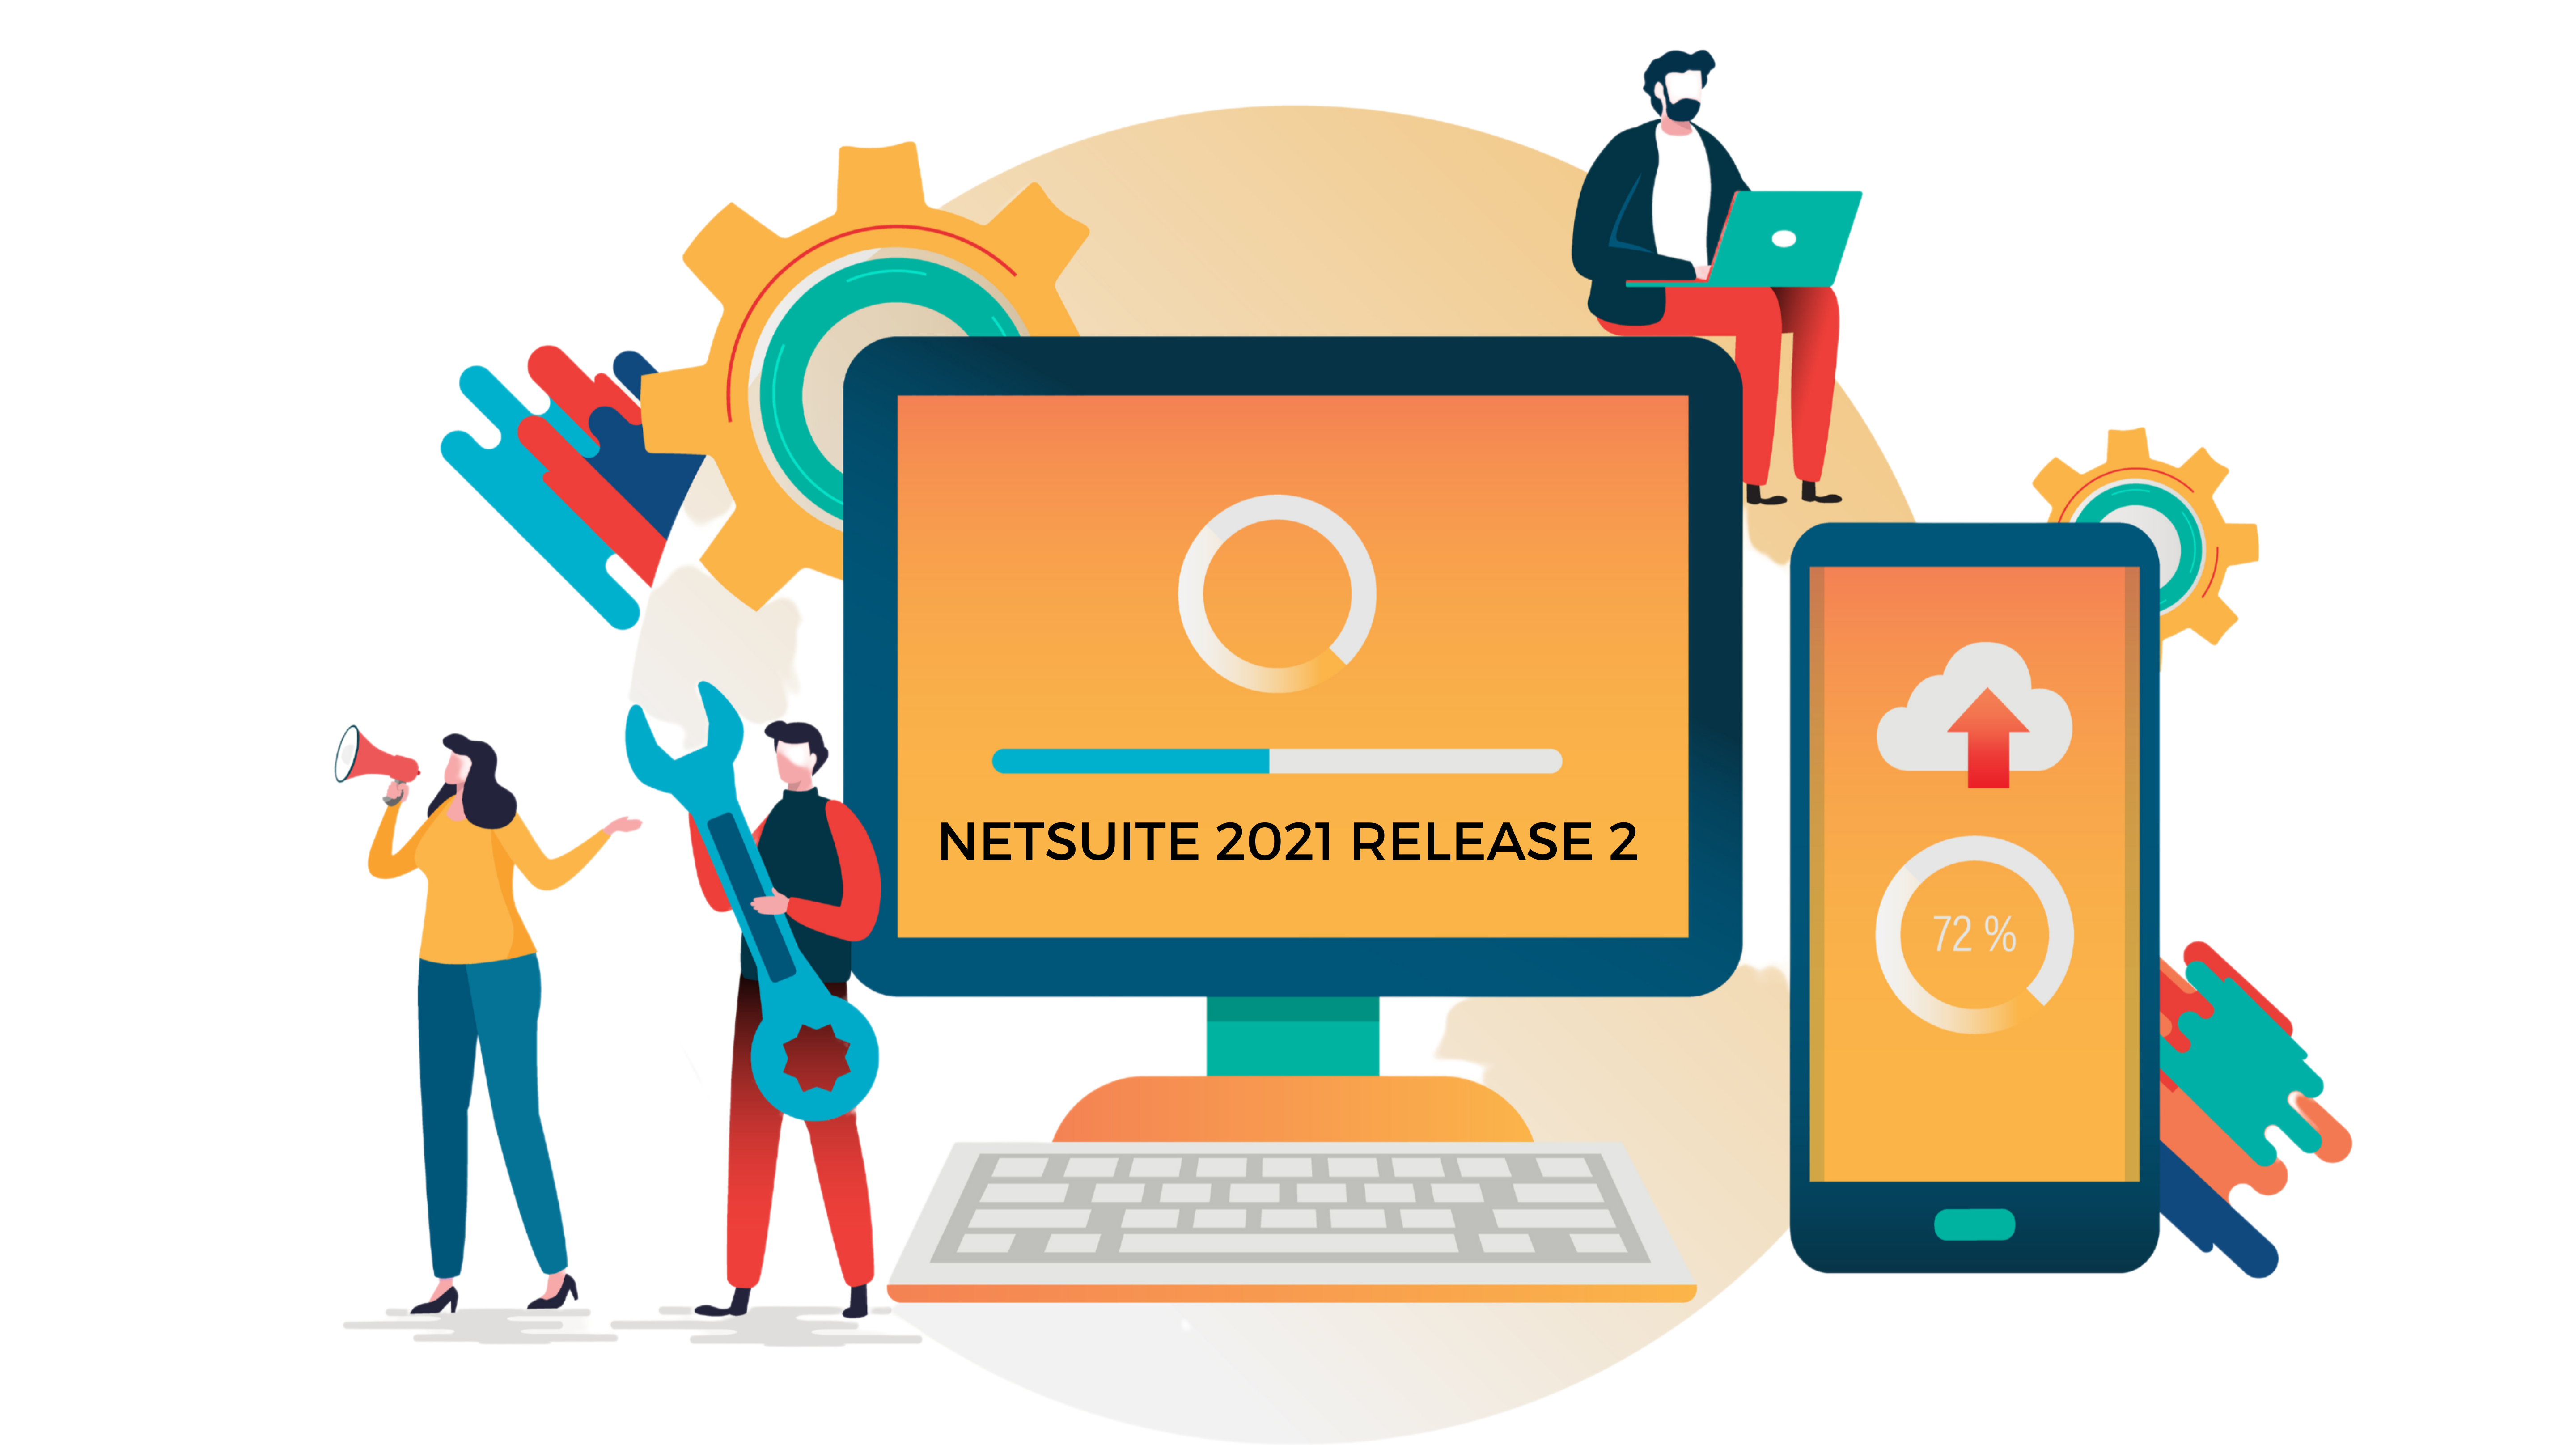 All you need to know about the NetSuite 2021 Release 2!